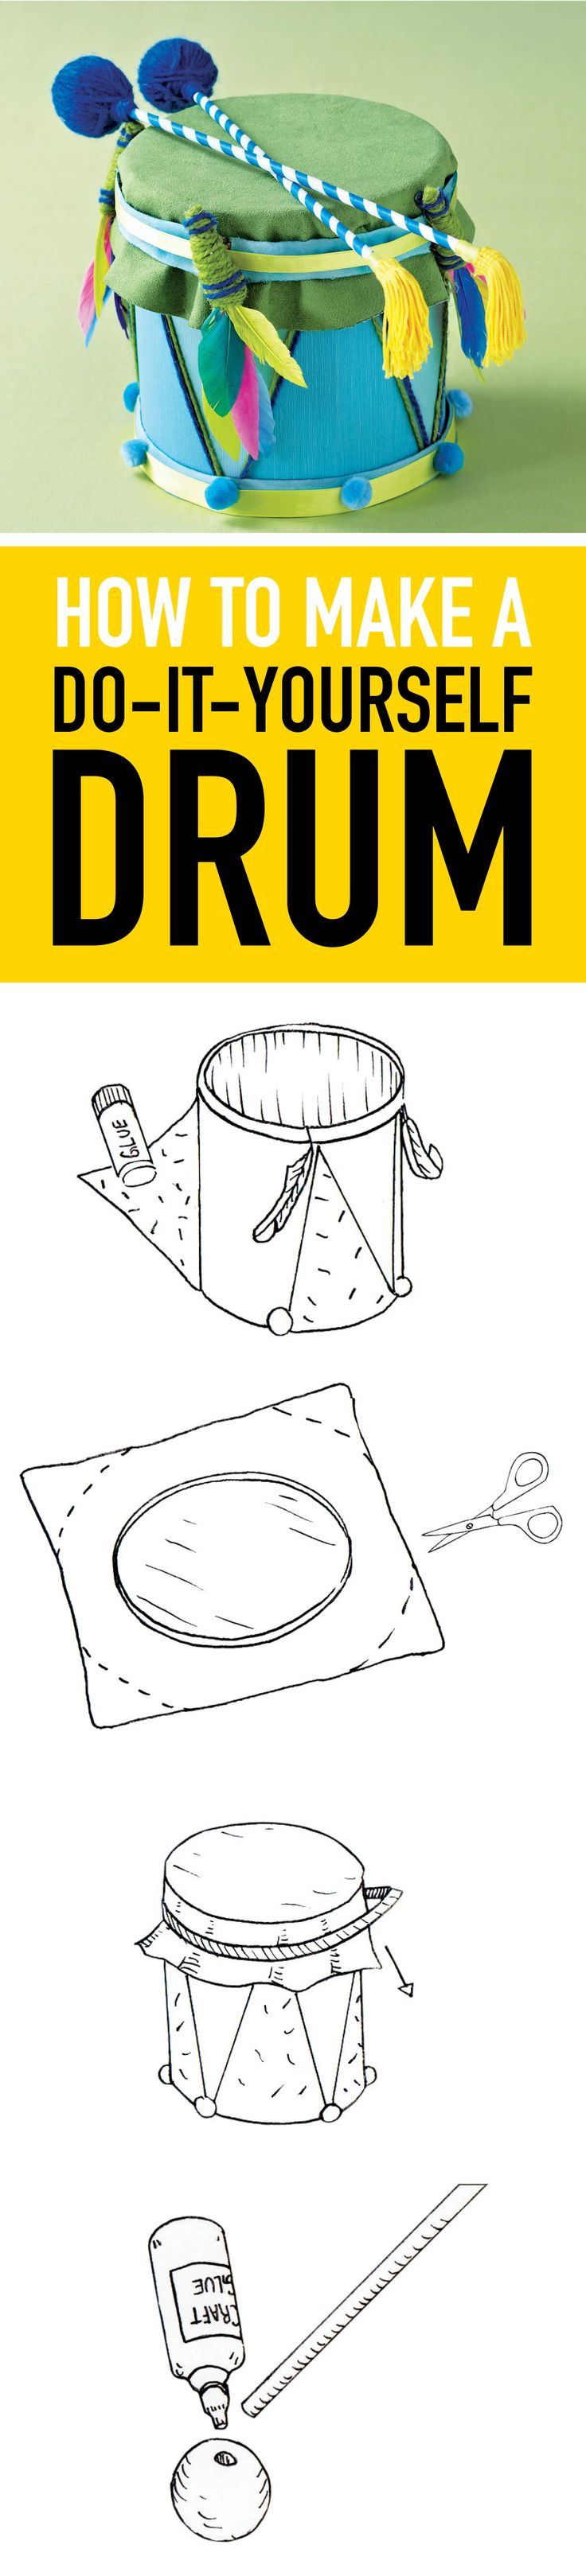 Help your budding musician hit the right notes with this easy-to-make DIY drum.